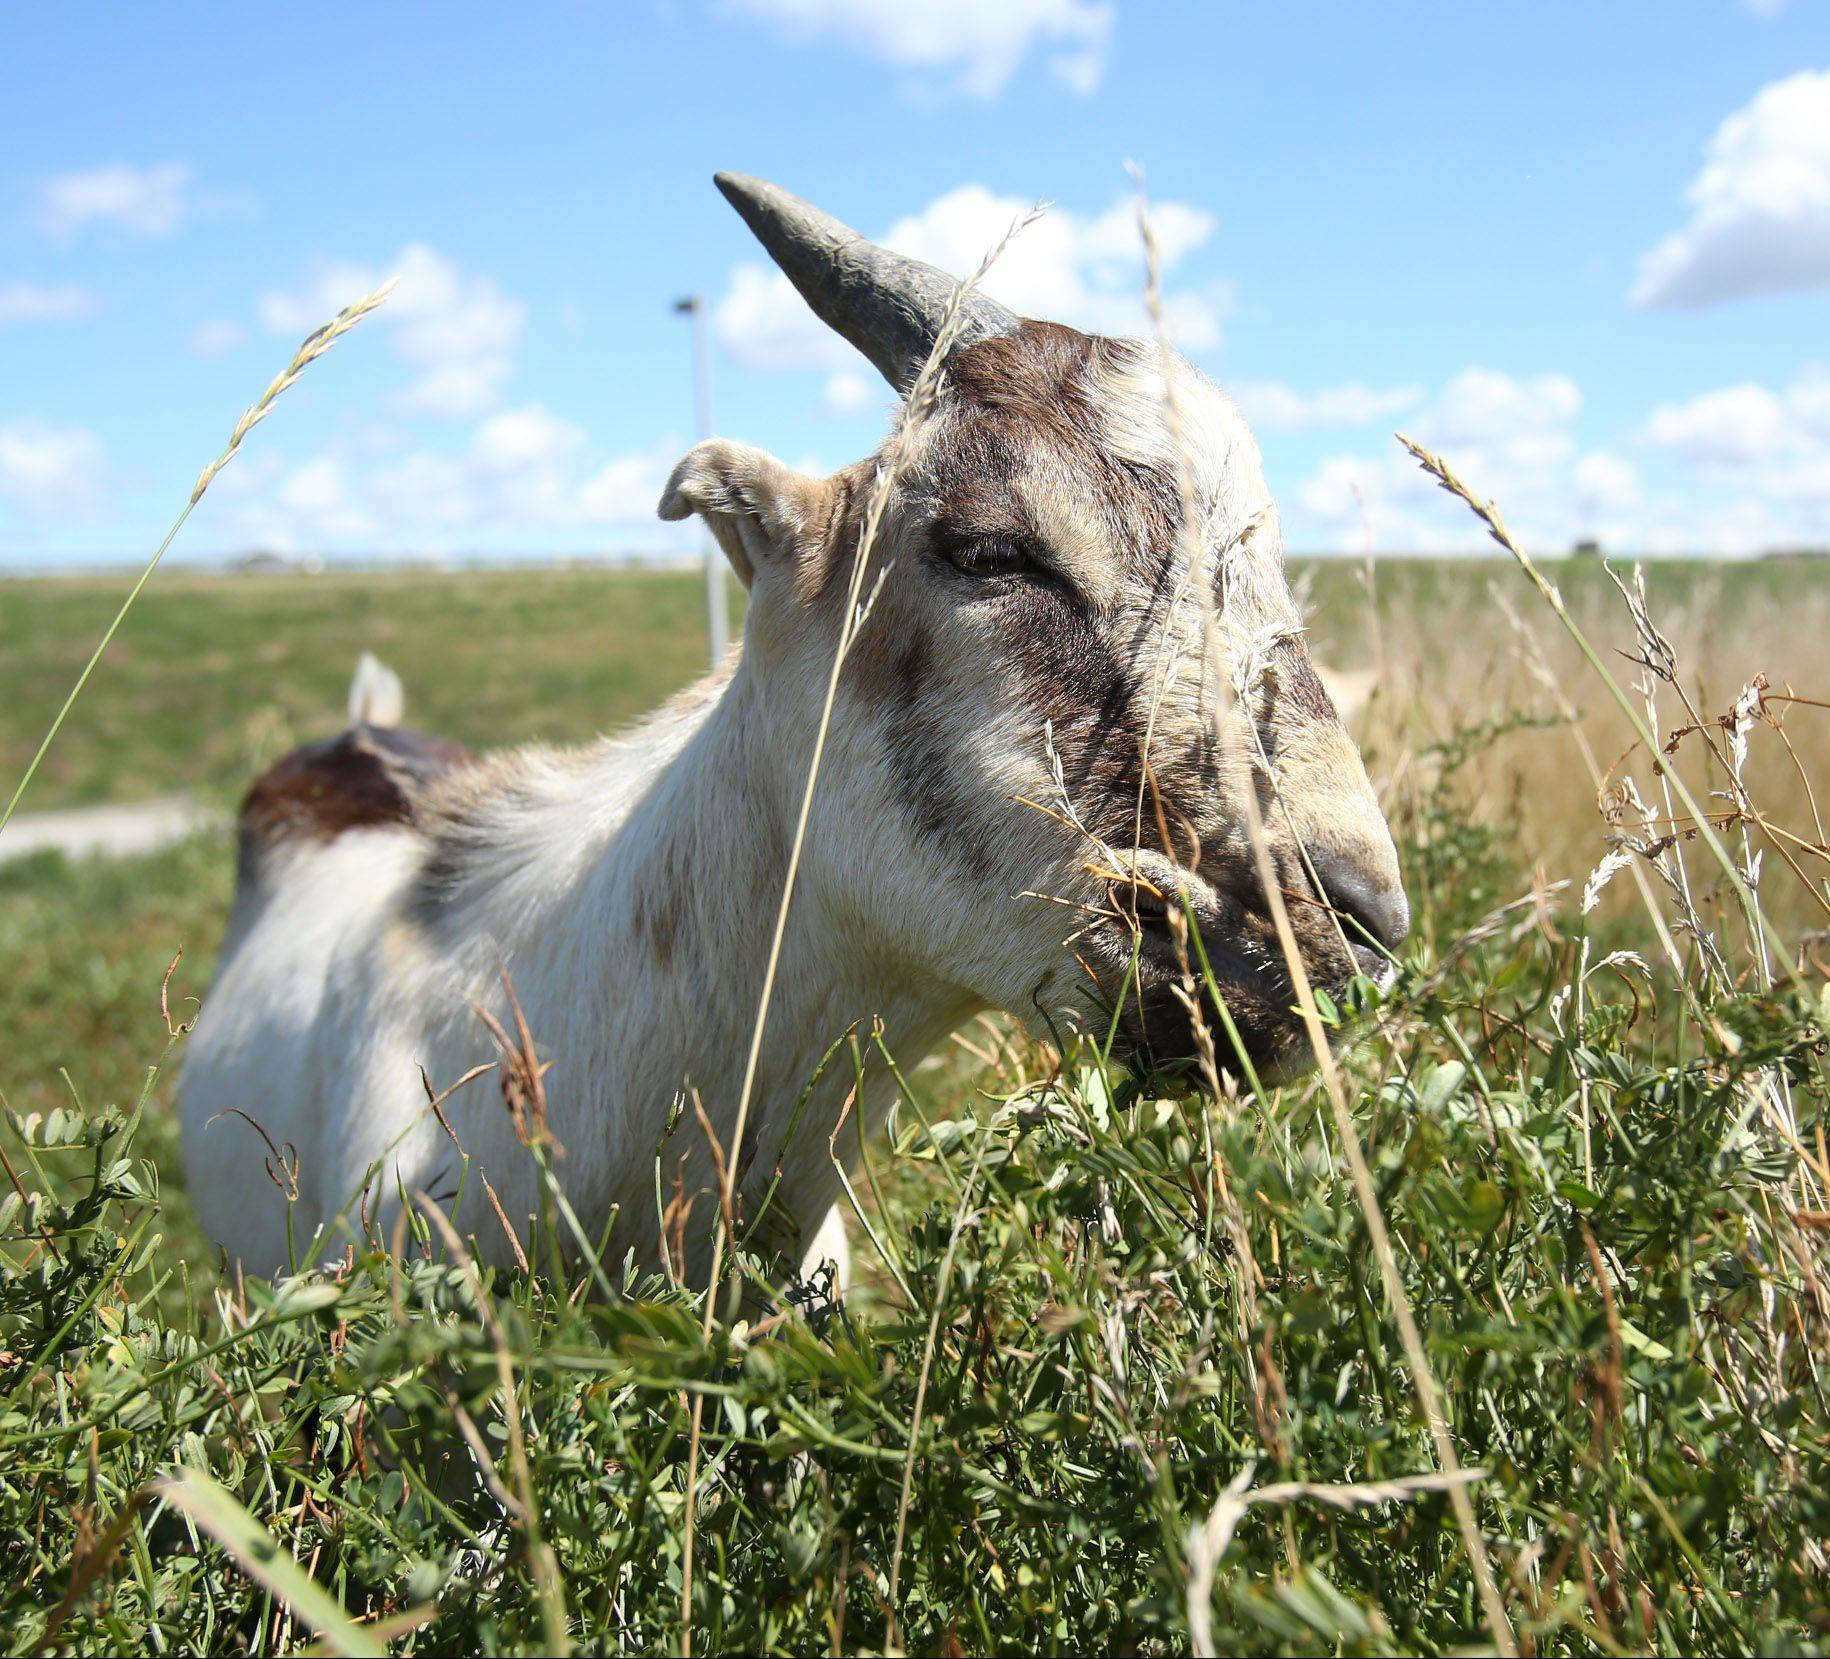 Llamas, goats love the jet-set life at O'Hare